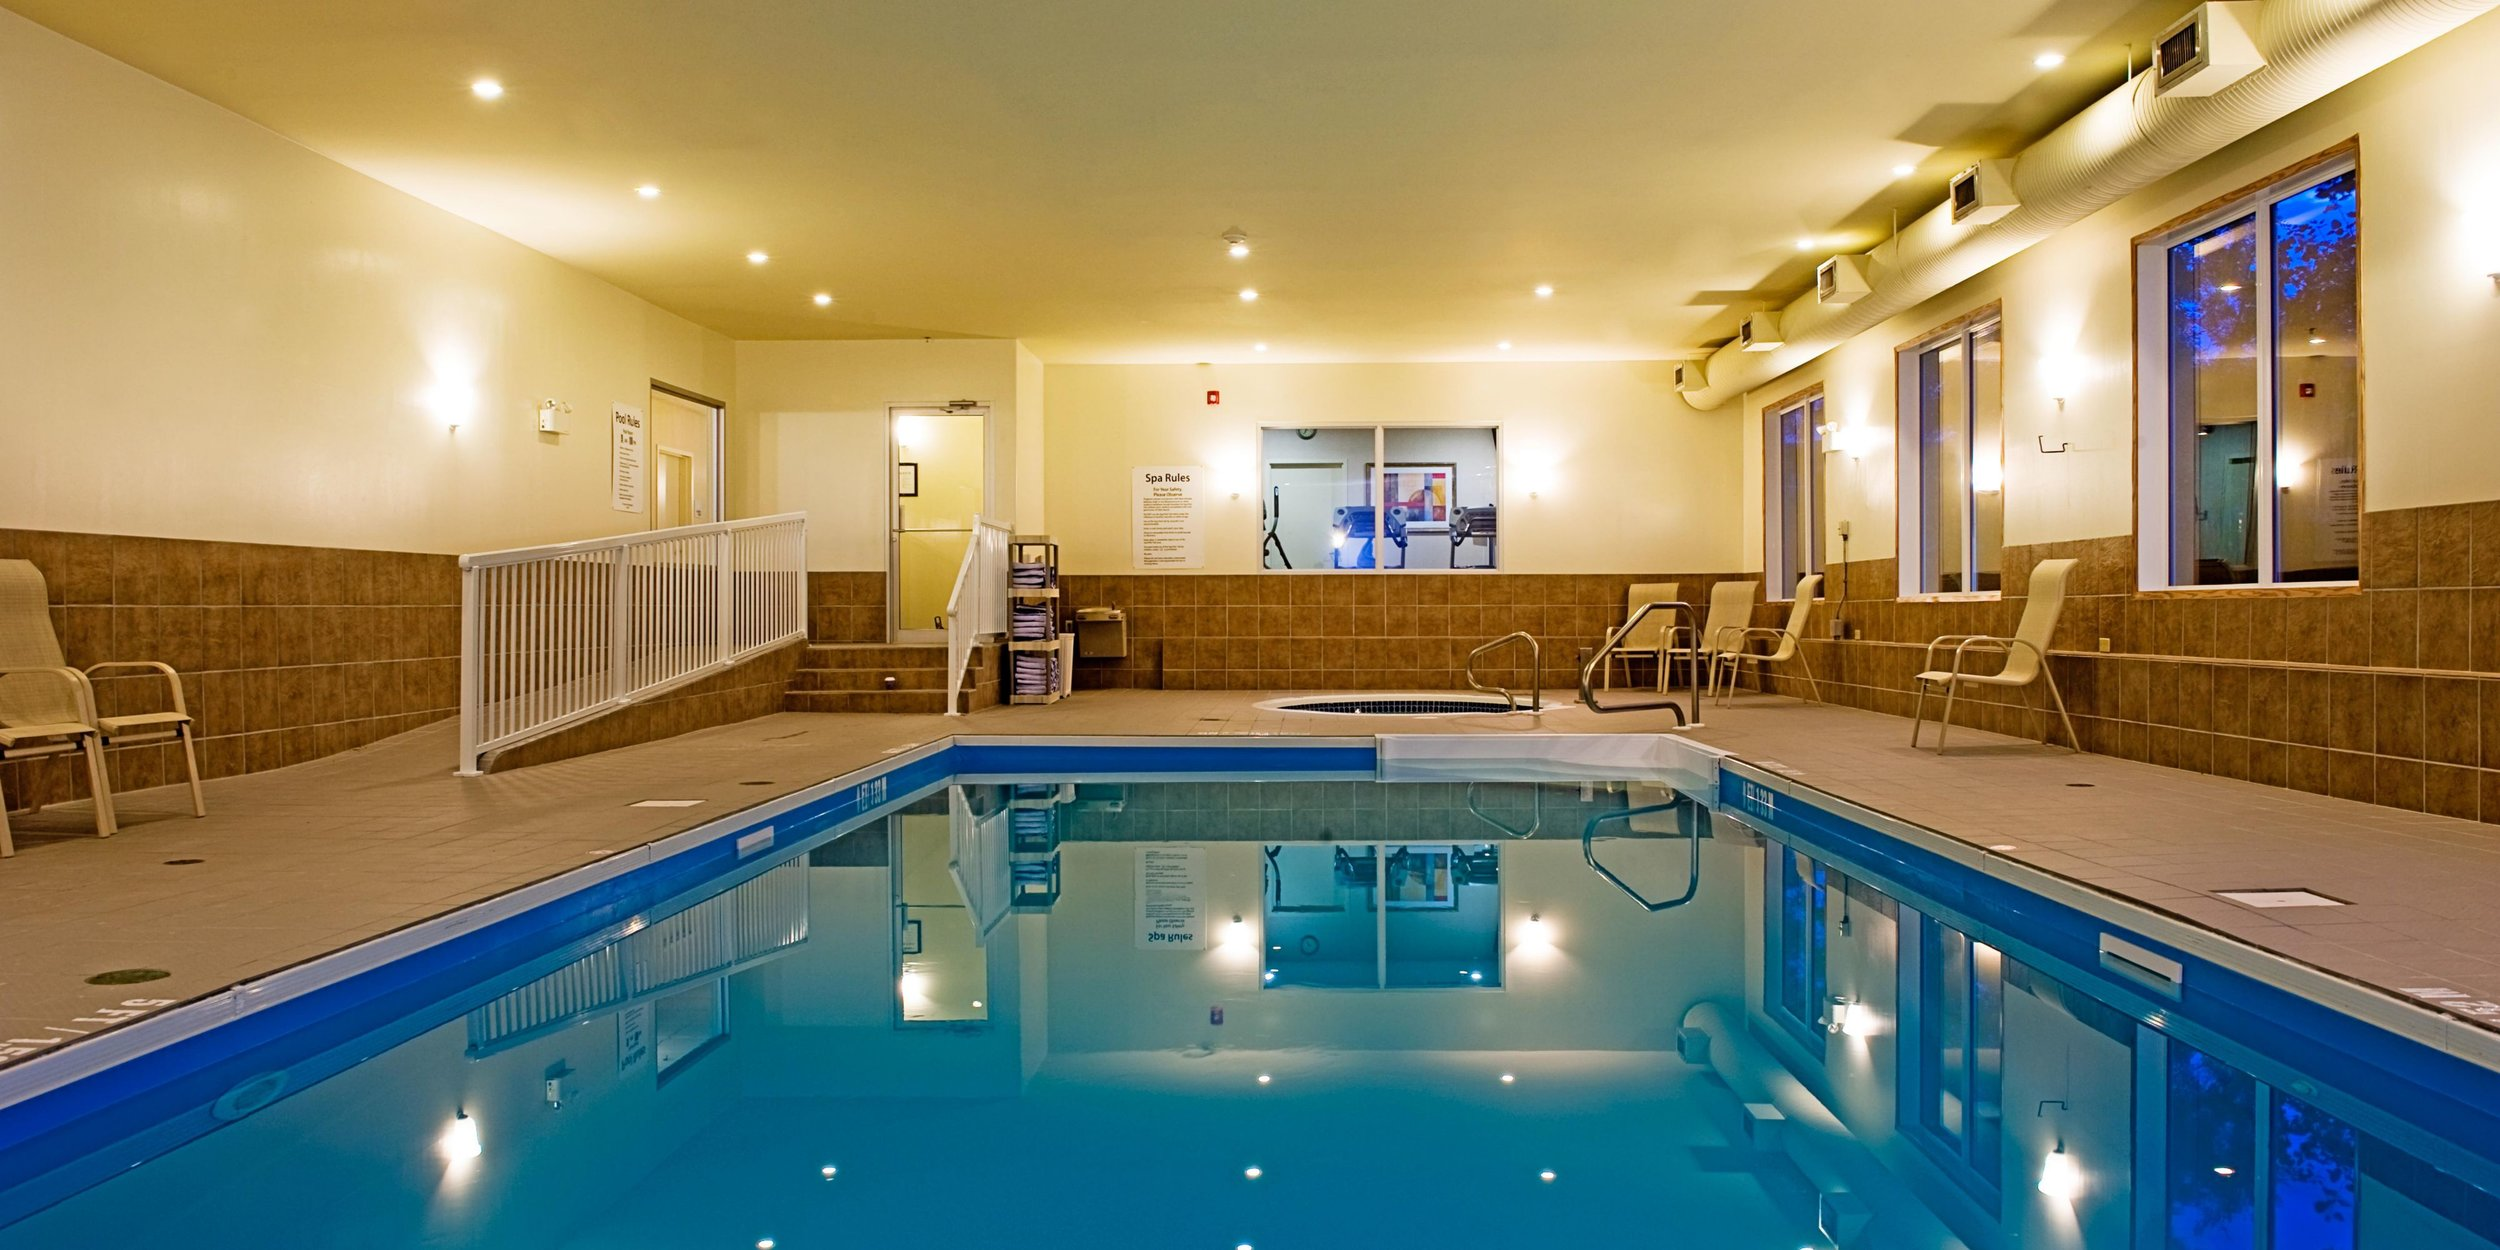 holiday-inn-express-and-suites-south-regina-2532277231-2x1.jpeg